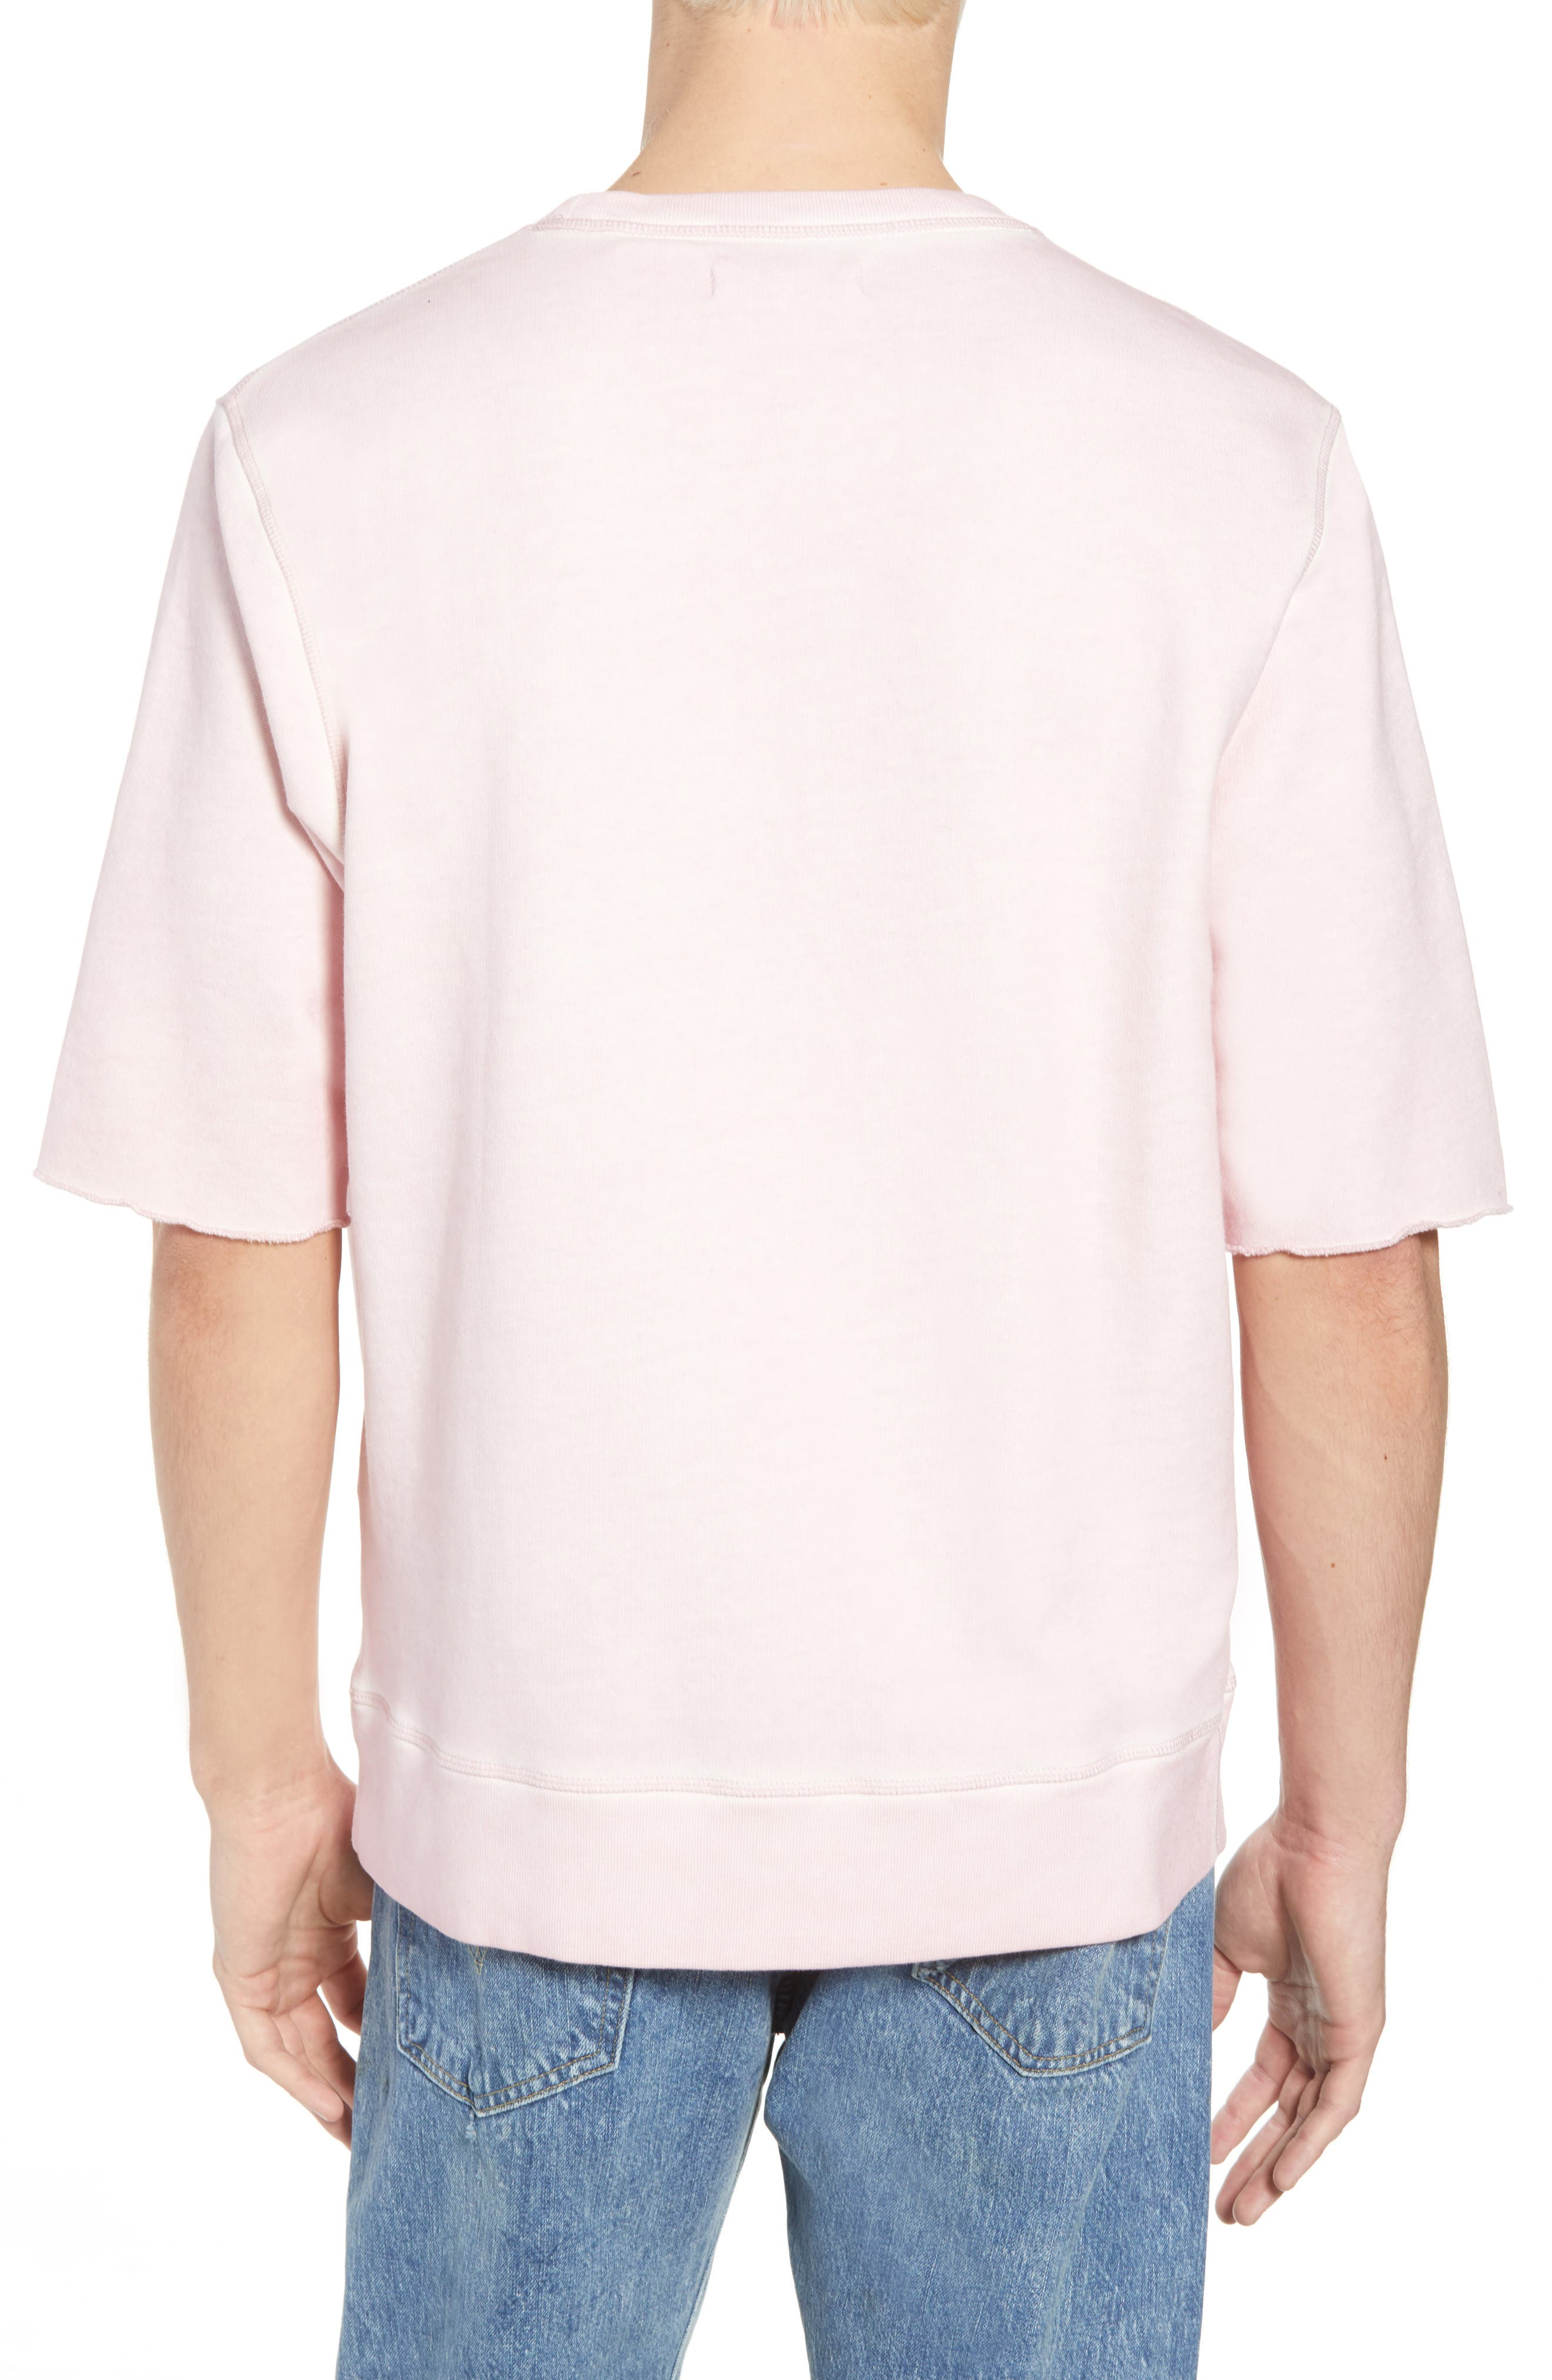 Levis'<sup>®</sup> Made & Crafted<sup>™</sup> Standard Fit T-Shirt,                             Alternate thumbnail 2, color,                             500